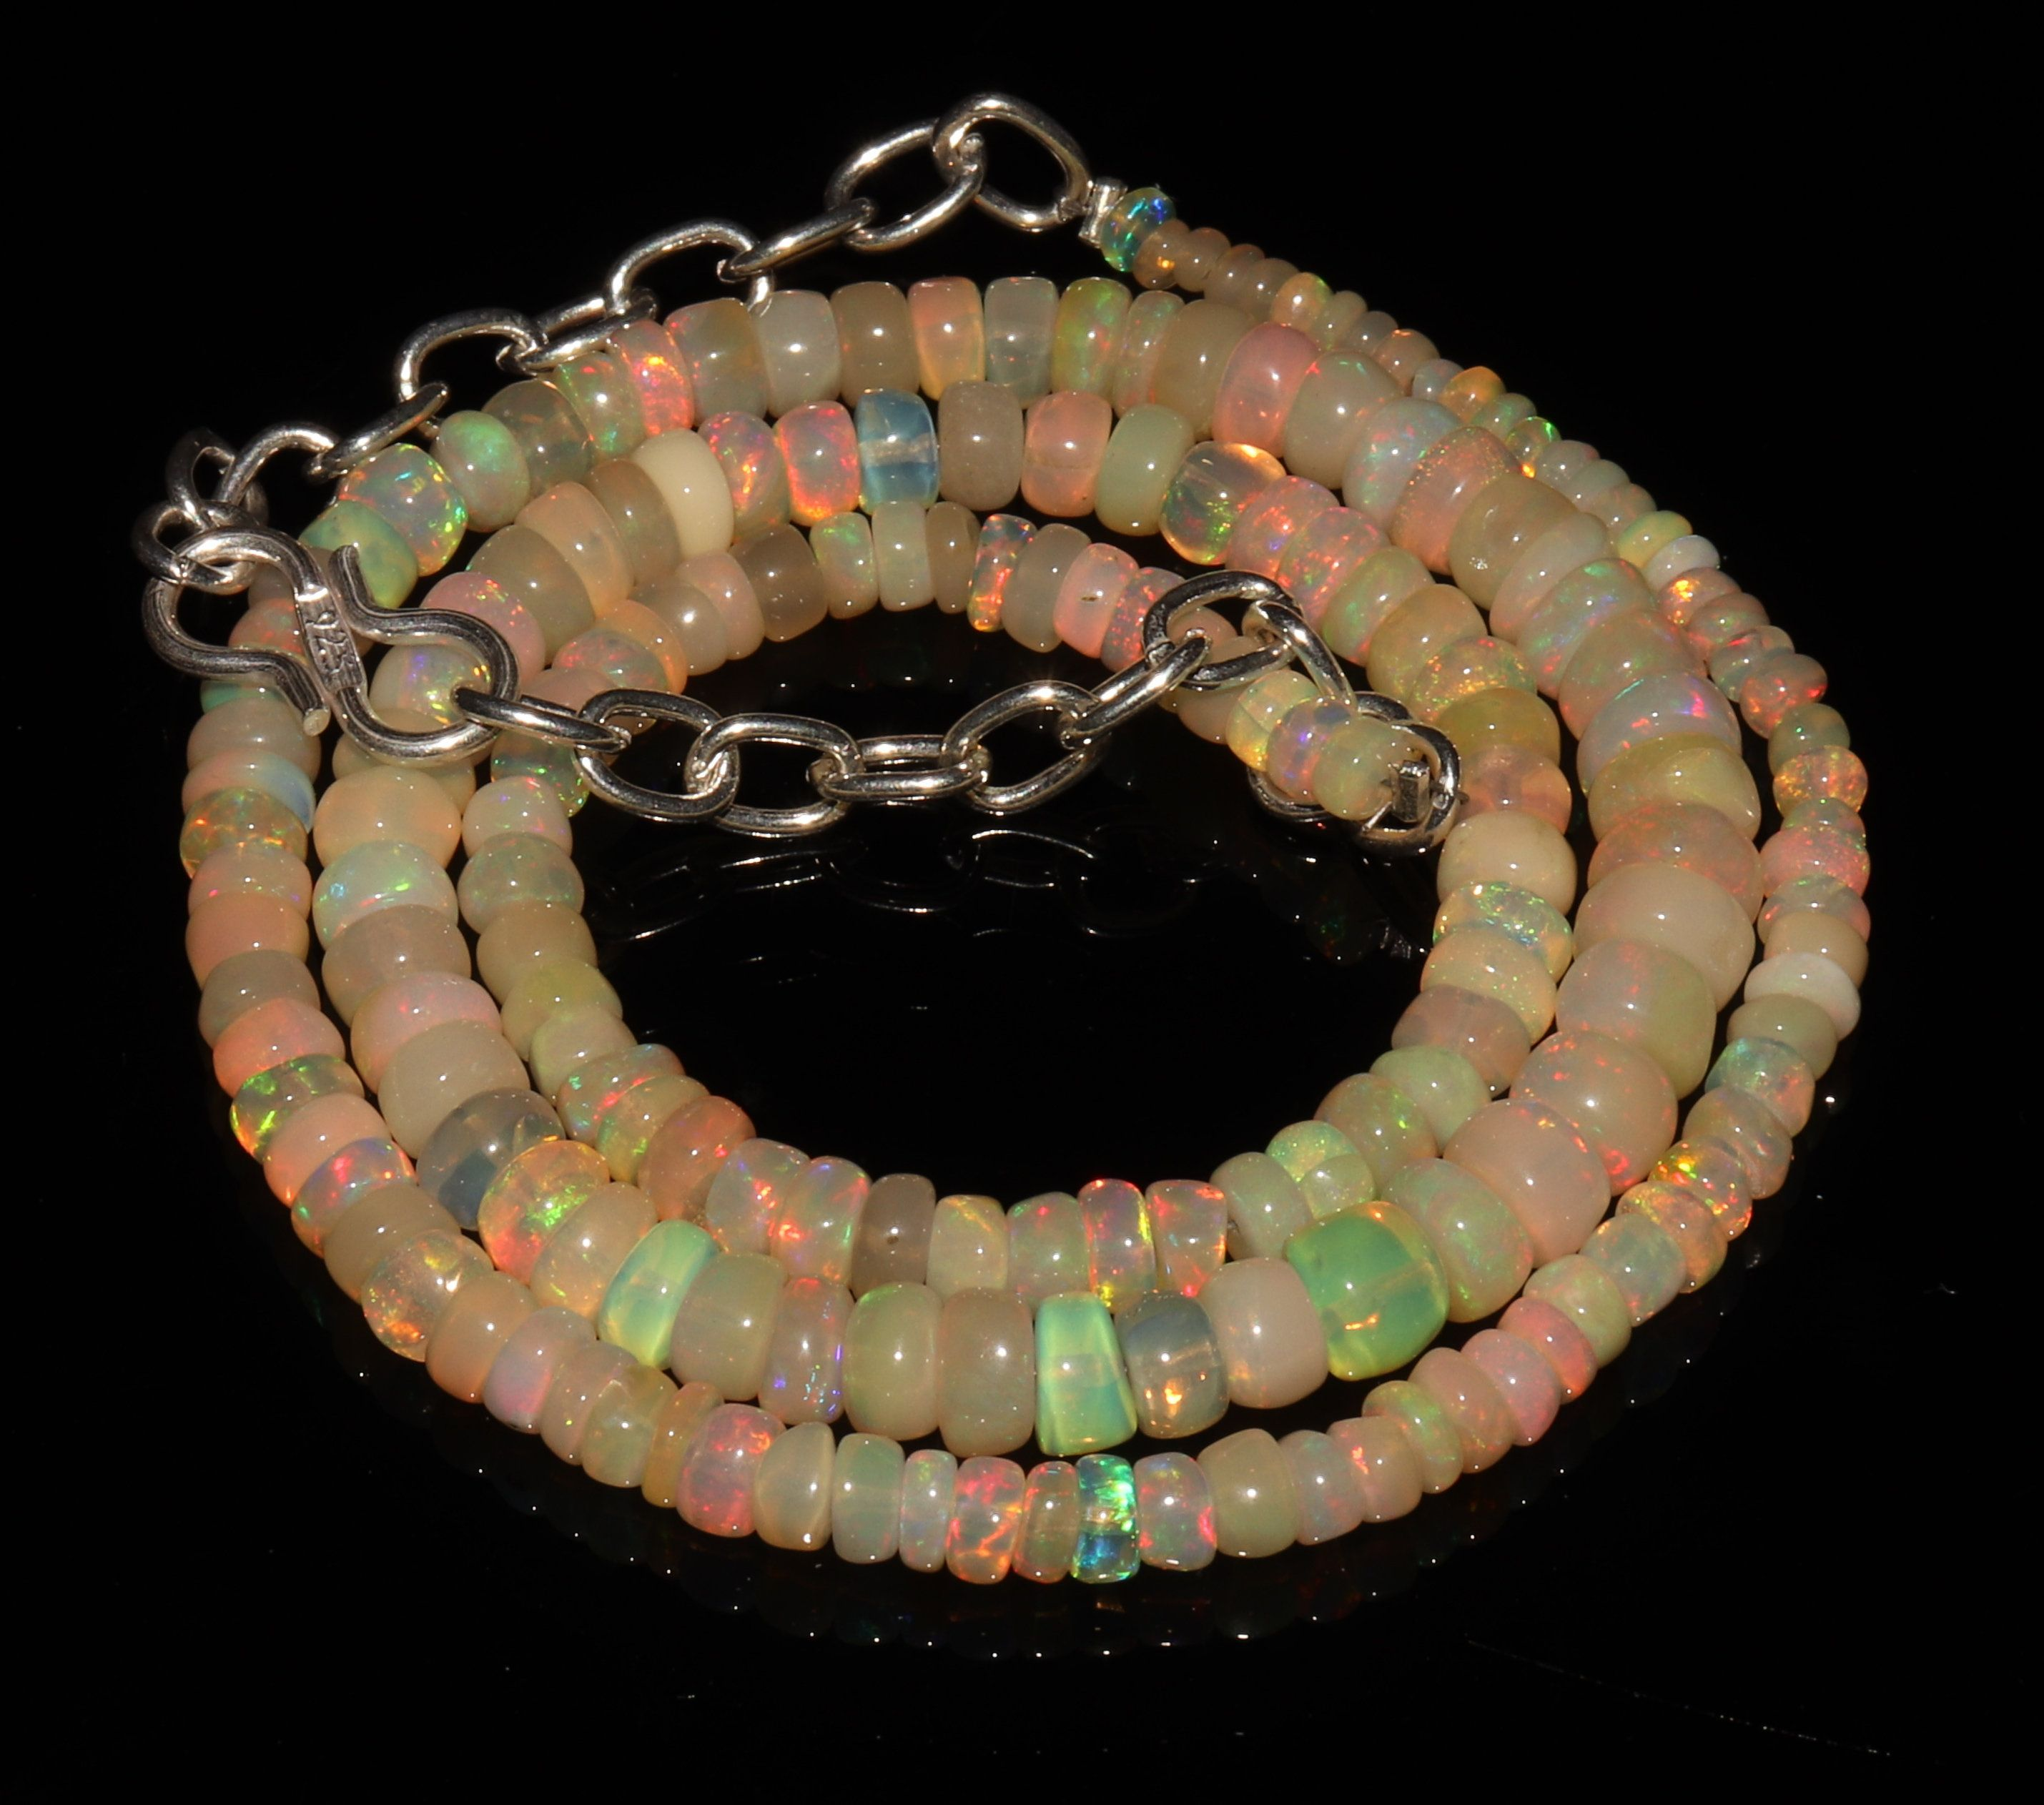 100/% Natural Ethopian Welo Fire Opal Gemstone  1 Strand 16 Inch  3 To 6 MM Multi Color Fire Opal